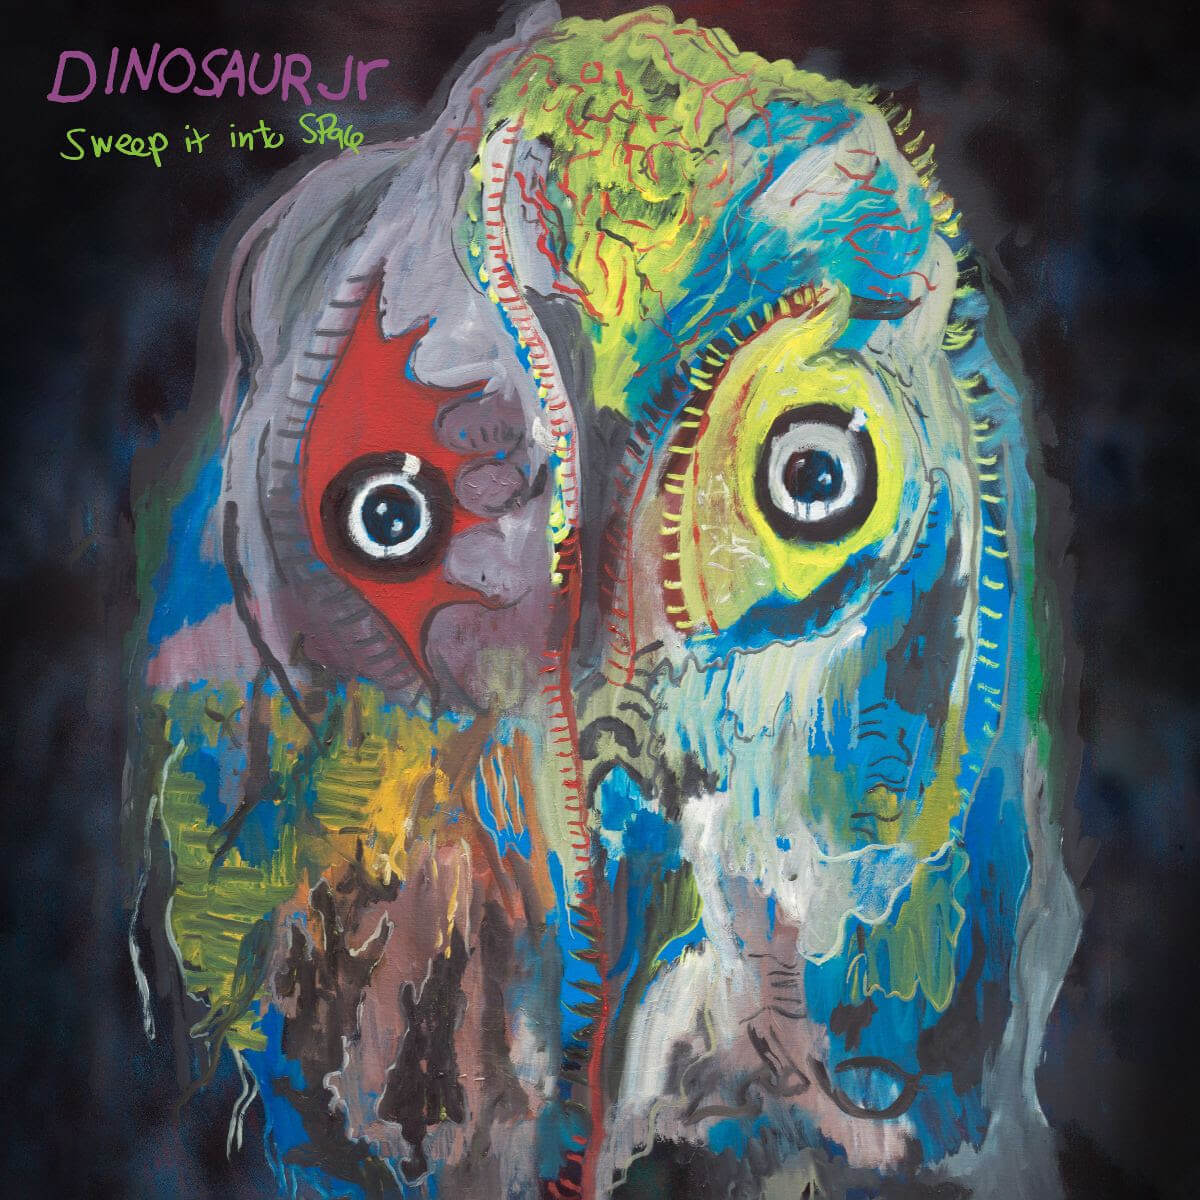 """Dinosaur Jr. Release Video For """"Take It Back."""" The track is off the trio's forthcoming release Sweep It Into Space, available April 23"""